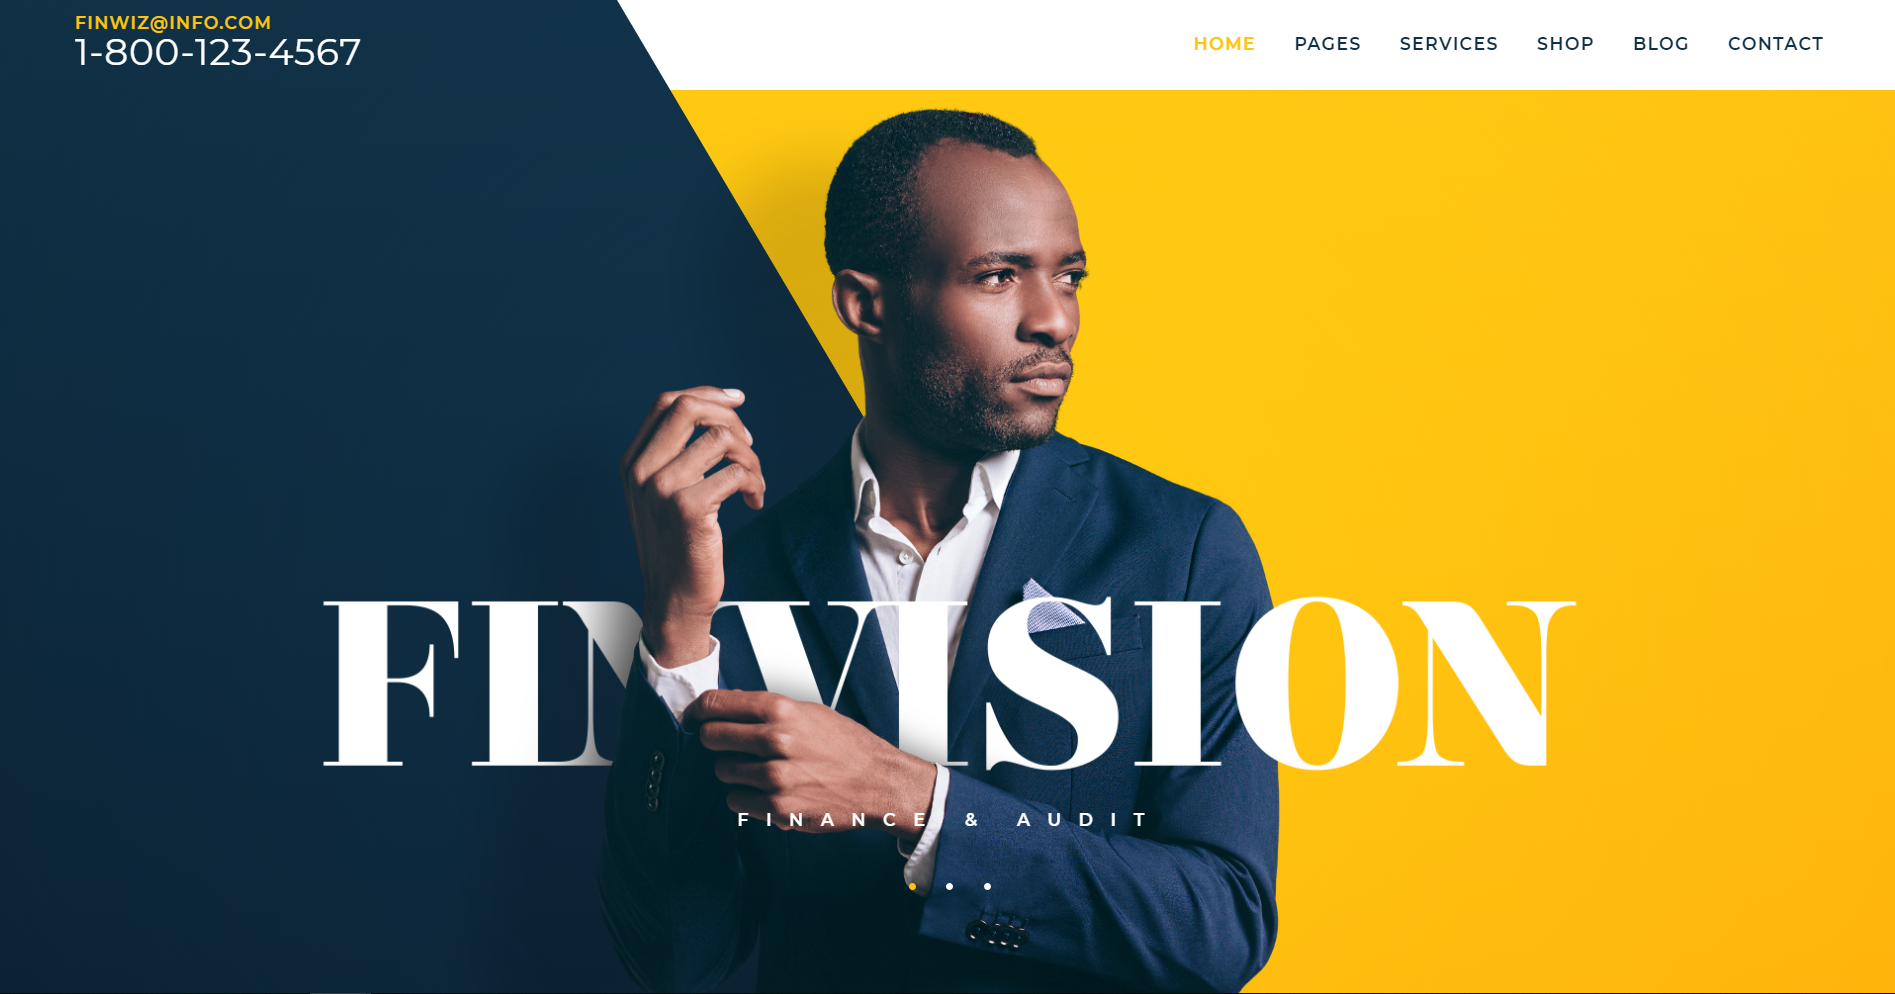 39. Finvision - Financial Audit and Consulting WordPress Theme